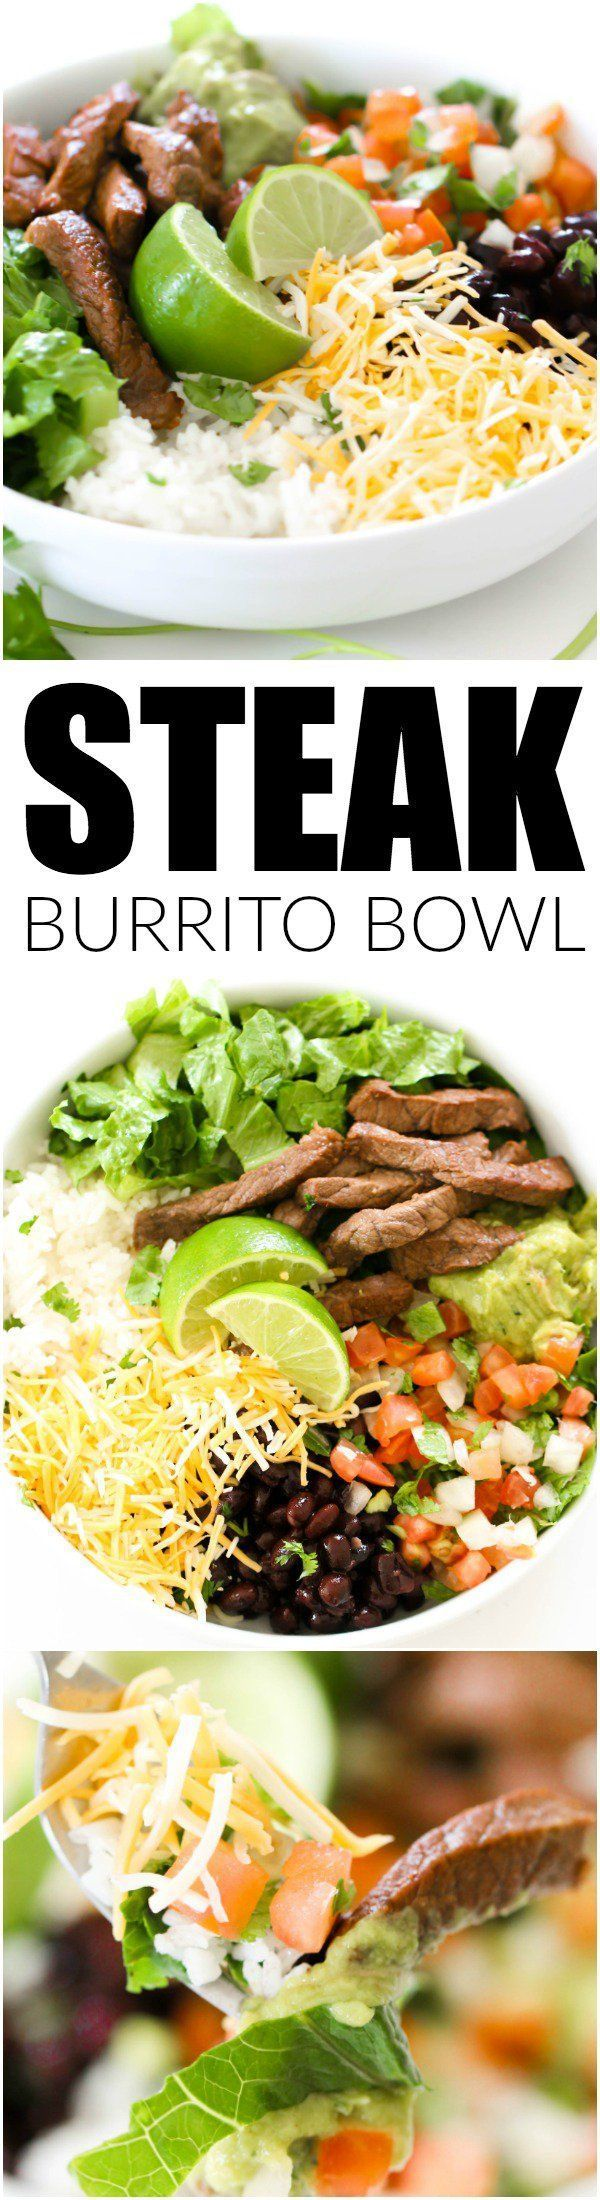 Steak Burrito Bowl fromSteak Burrito Bowl fromSixSistersStuff.com| Family Meal Ideas | Dinner Recipes | Beef Recipes | Mexican Food Ideas | Healthy Lunch